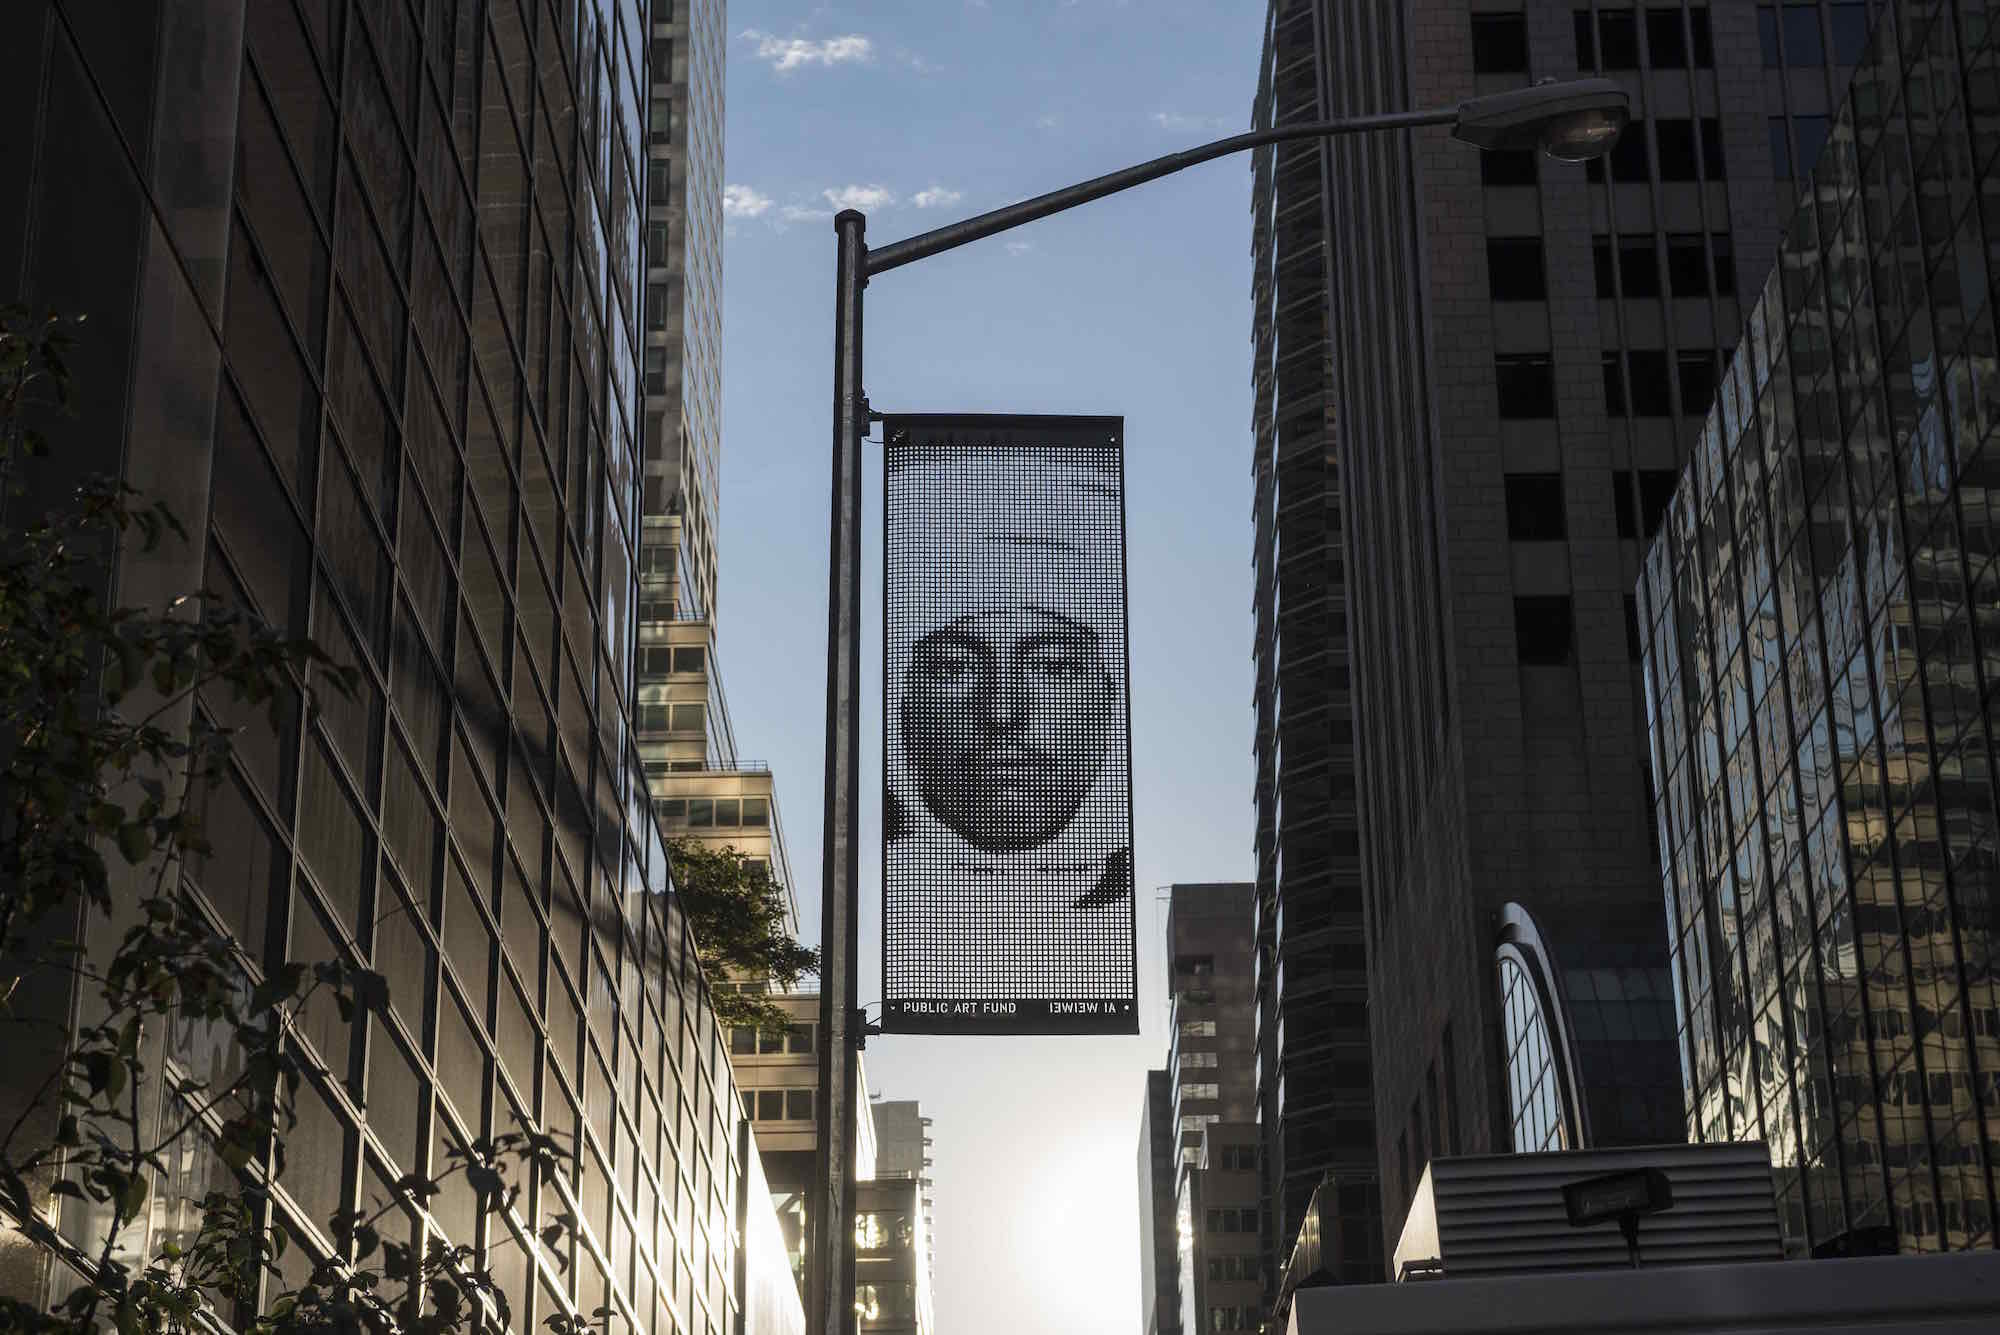 Portrait Banners From Ai Weiwei S Fences Project Available For Sale To Benefit Refugee Charities 6sqft